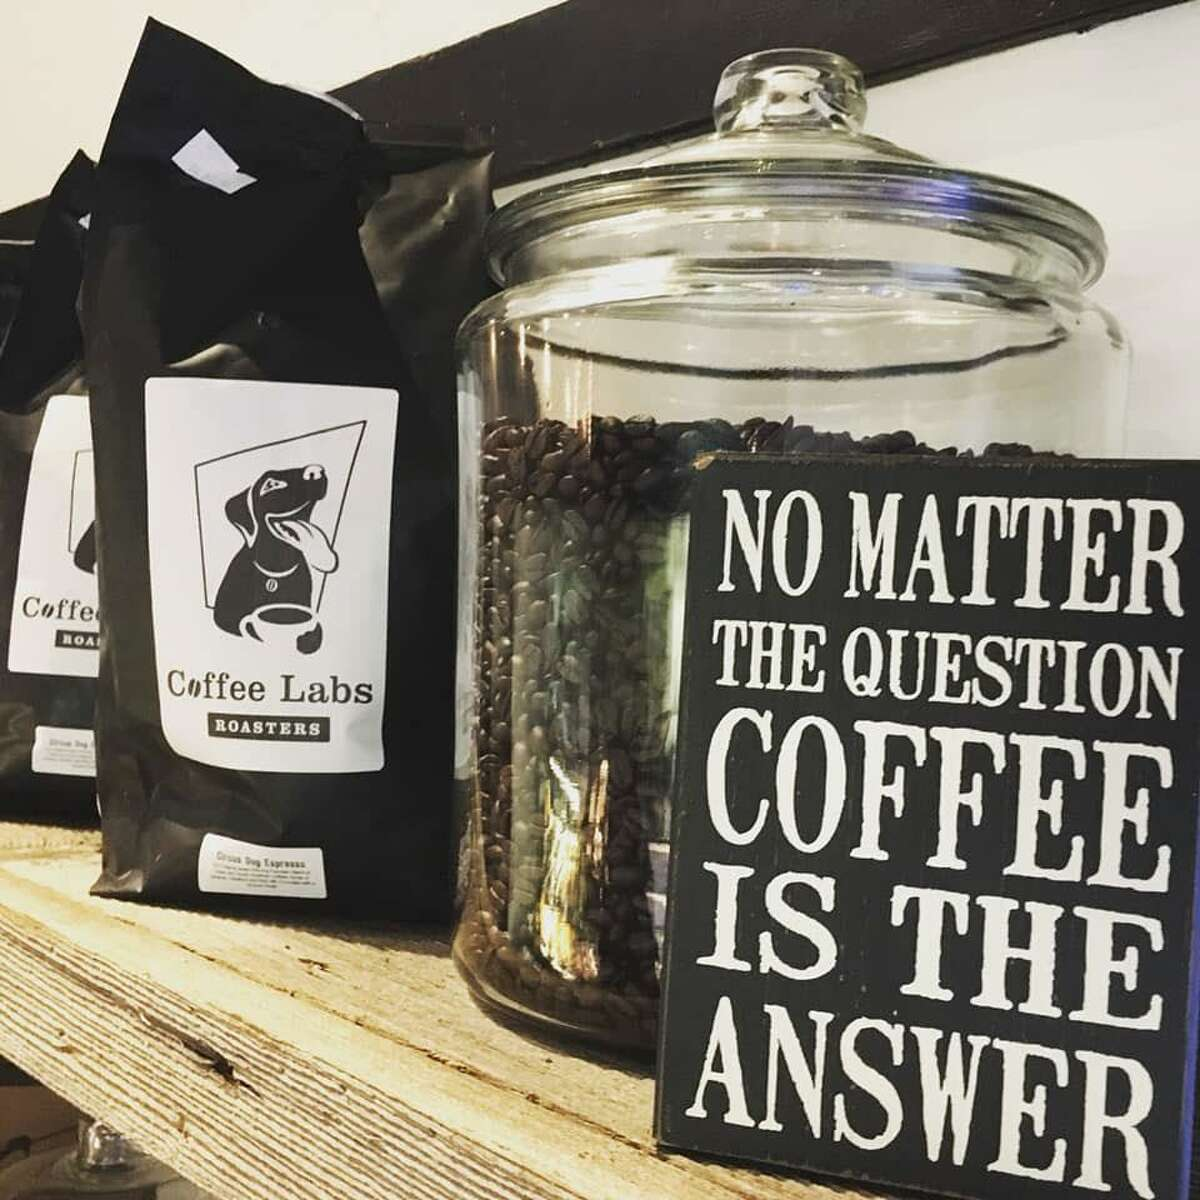 The Coffee Barn in Wilton was known for its selection of fresh roasted coffees.